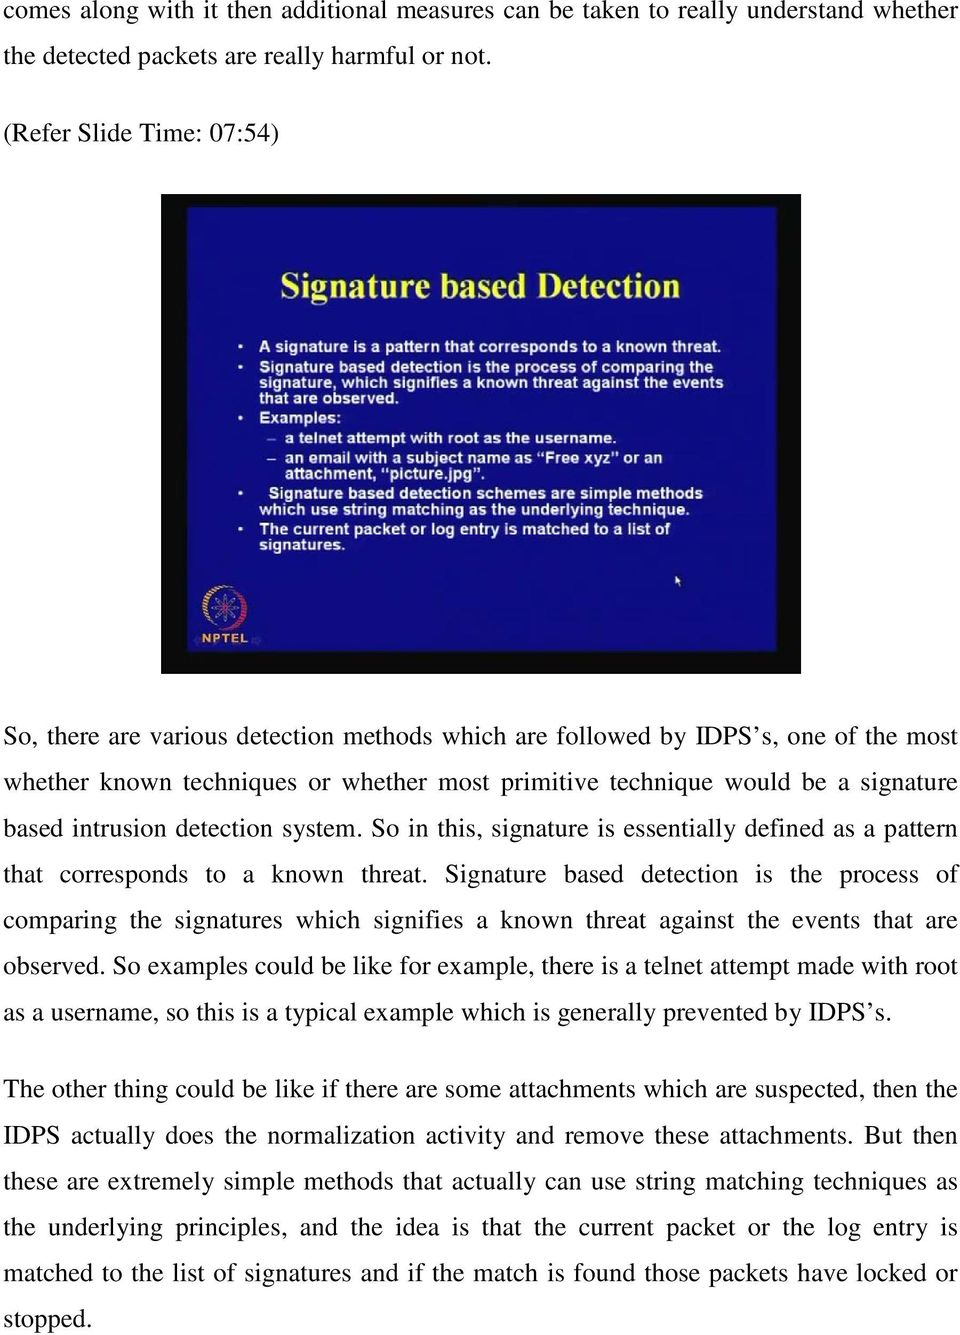 intrusion detection system. So in this, signature is essentially defined as a pattern that corresponds to a known threat.